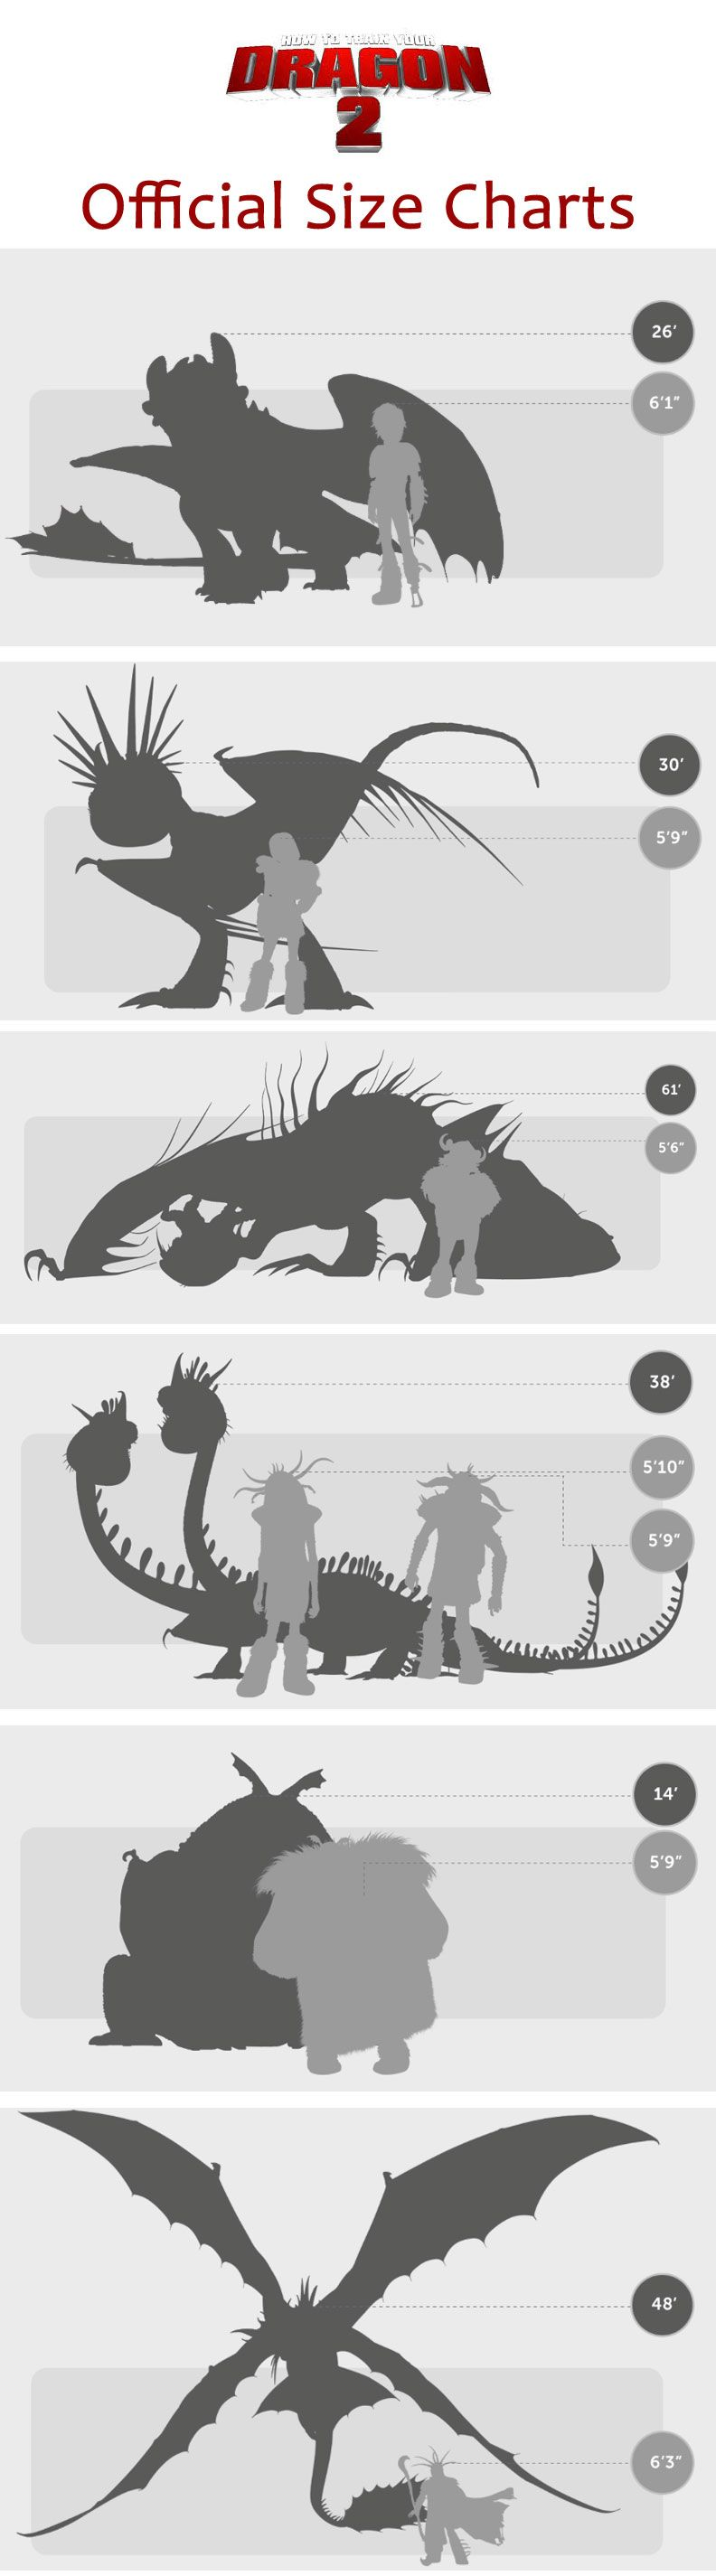 Here are the official height charts for How to Train Your Dragon 2!